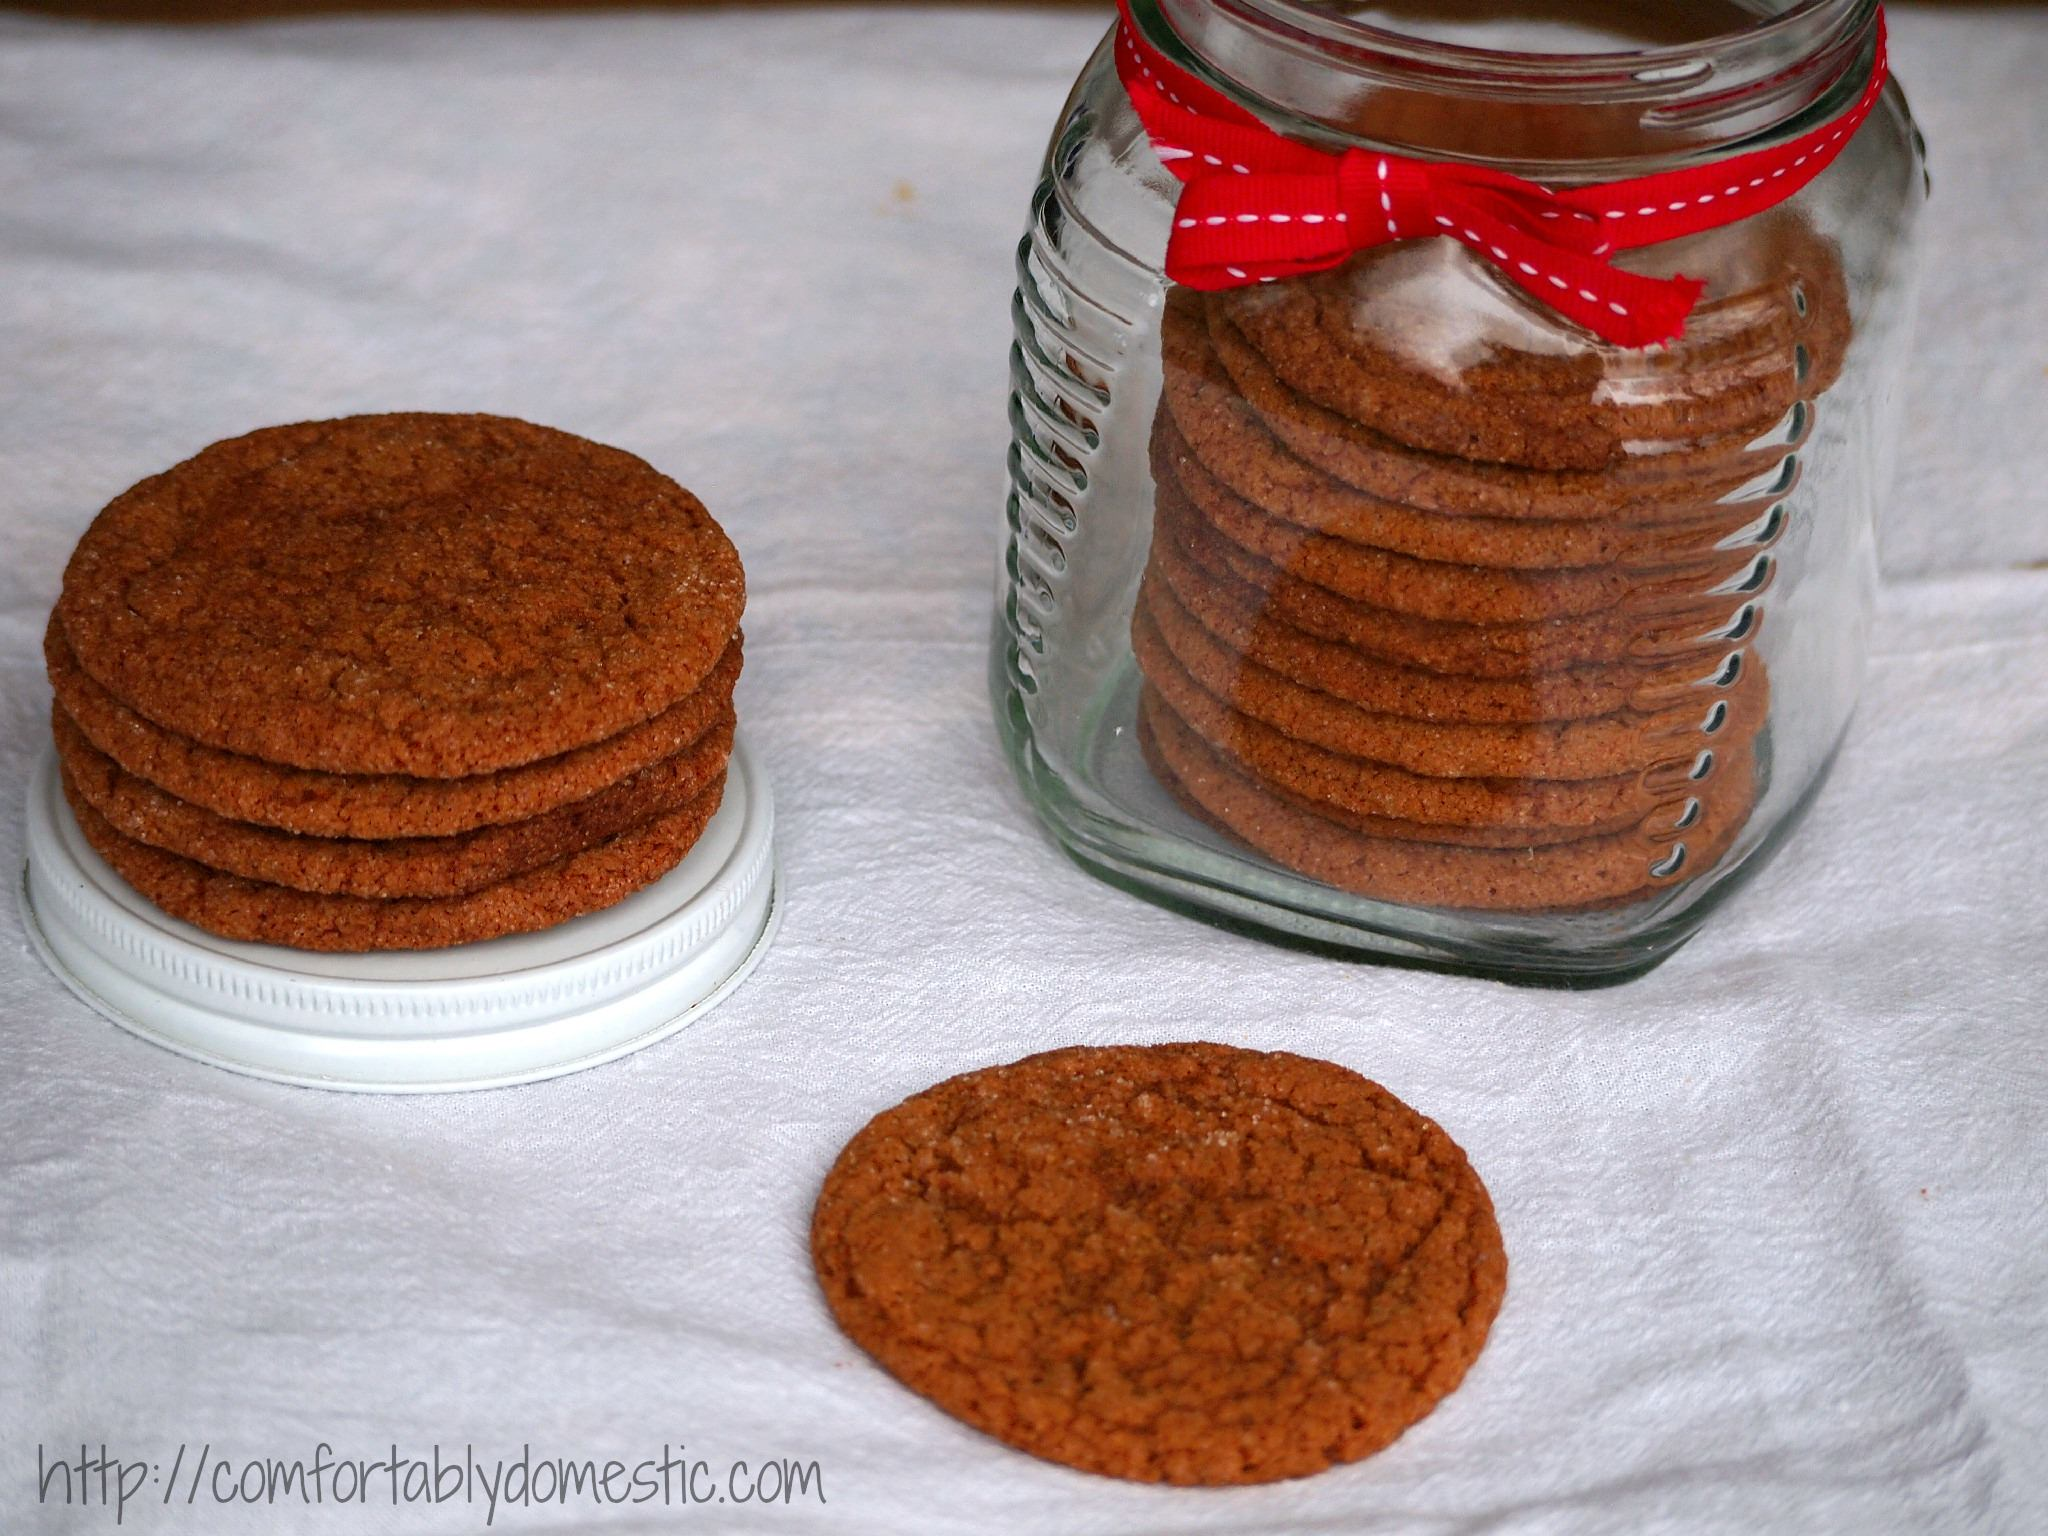 Old Fashioned Gingersnap Cookies Recipe via ComfortablyDomestic.com - Crisp ginger and molasses cookies, just like Grandma used to make.